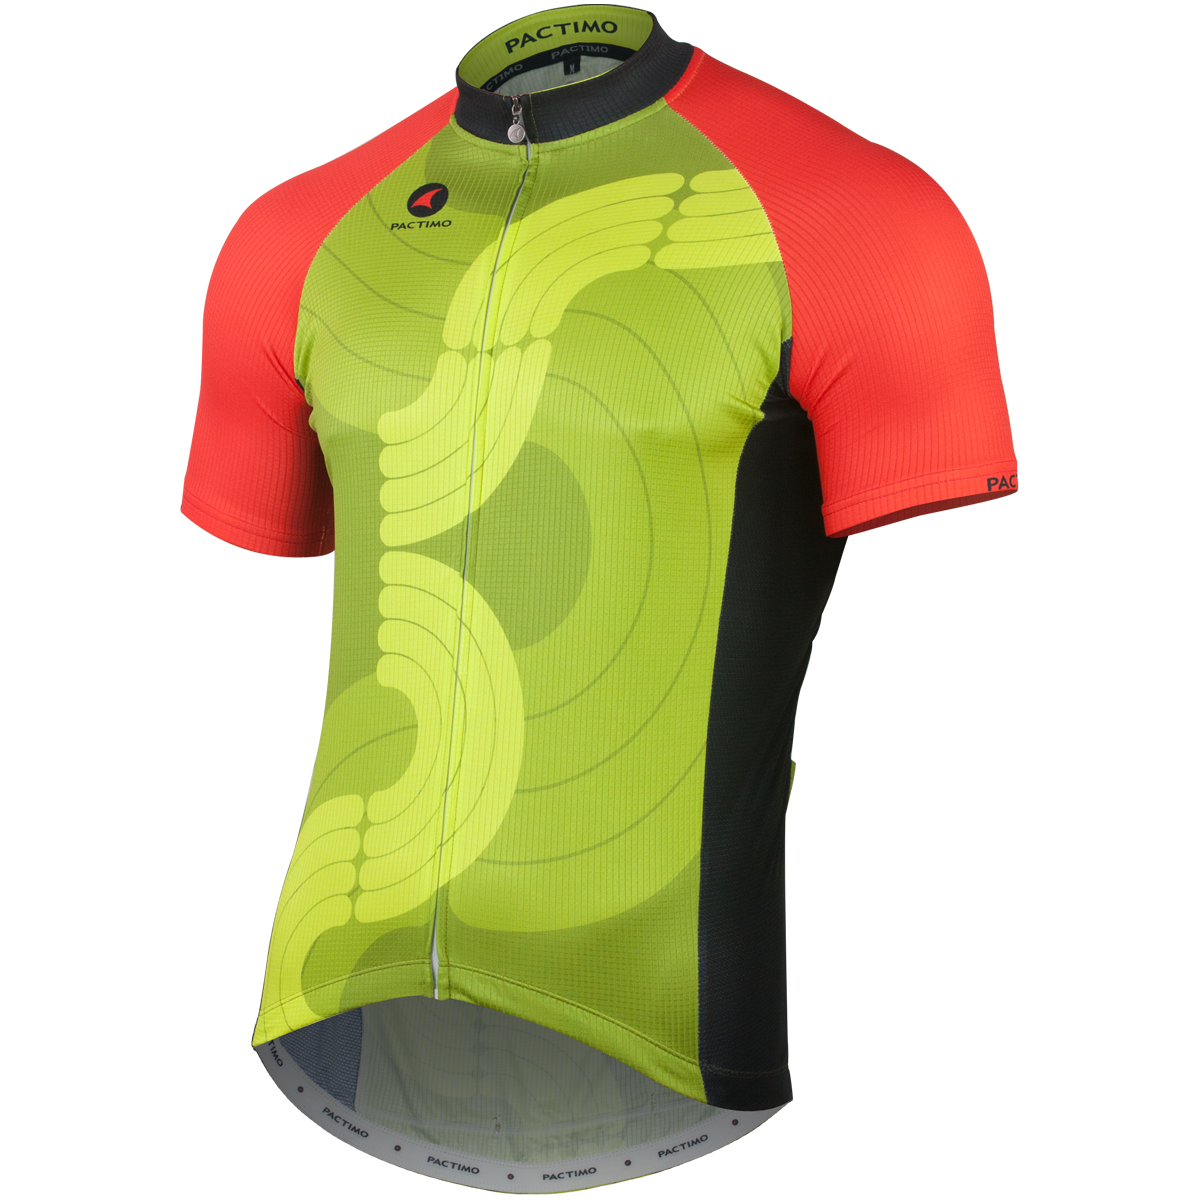 d1fdeaf1c Designer Cycling Jersey by Pactimo